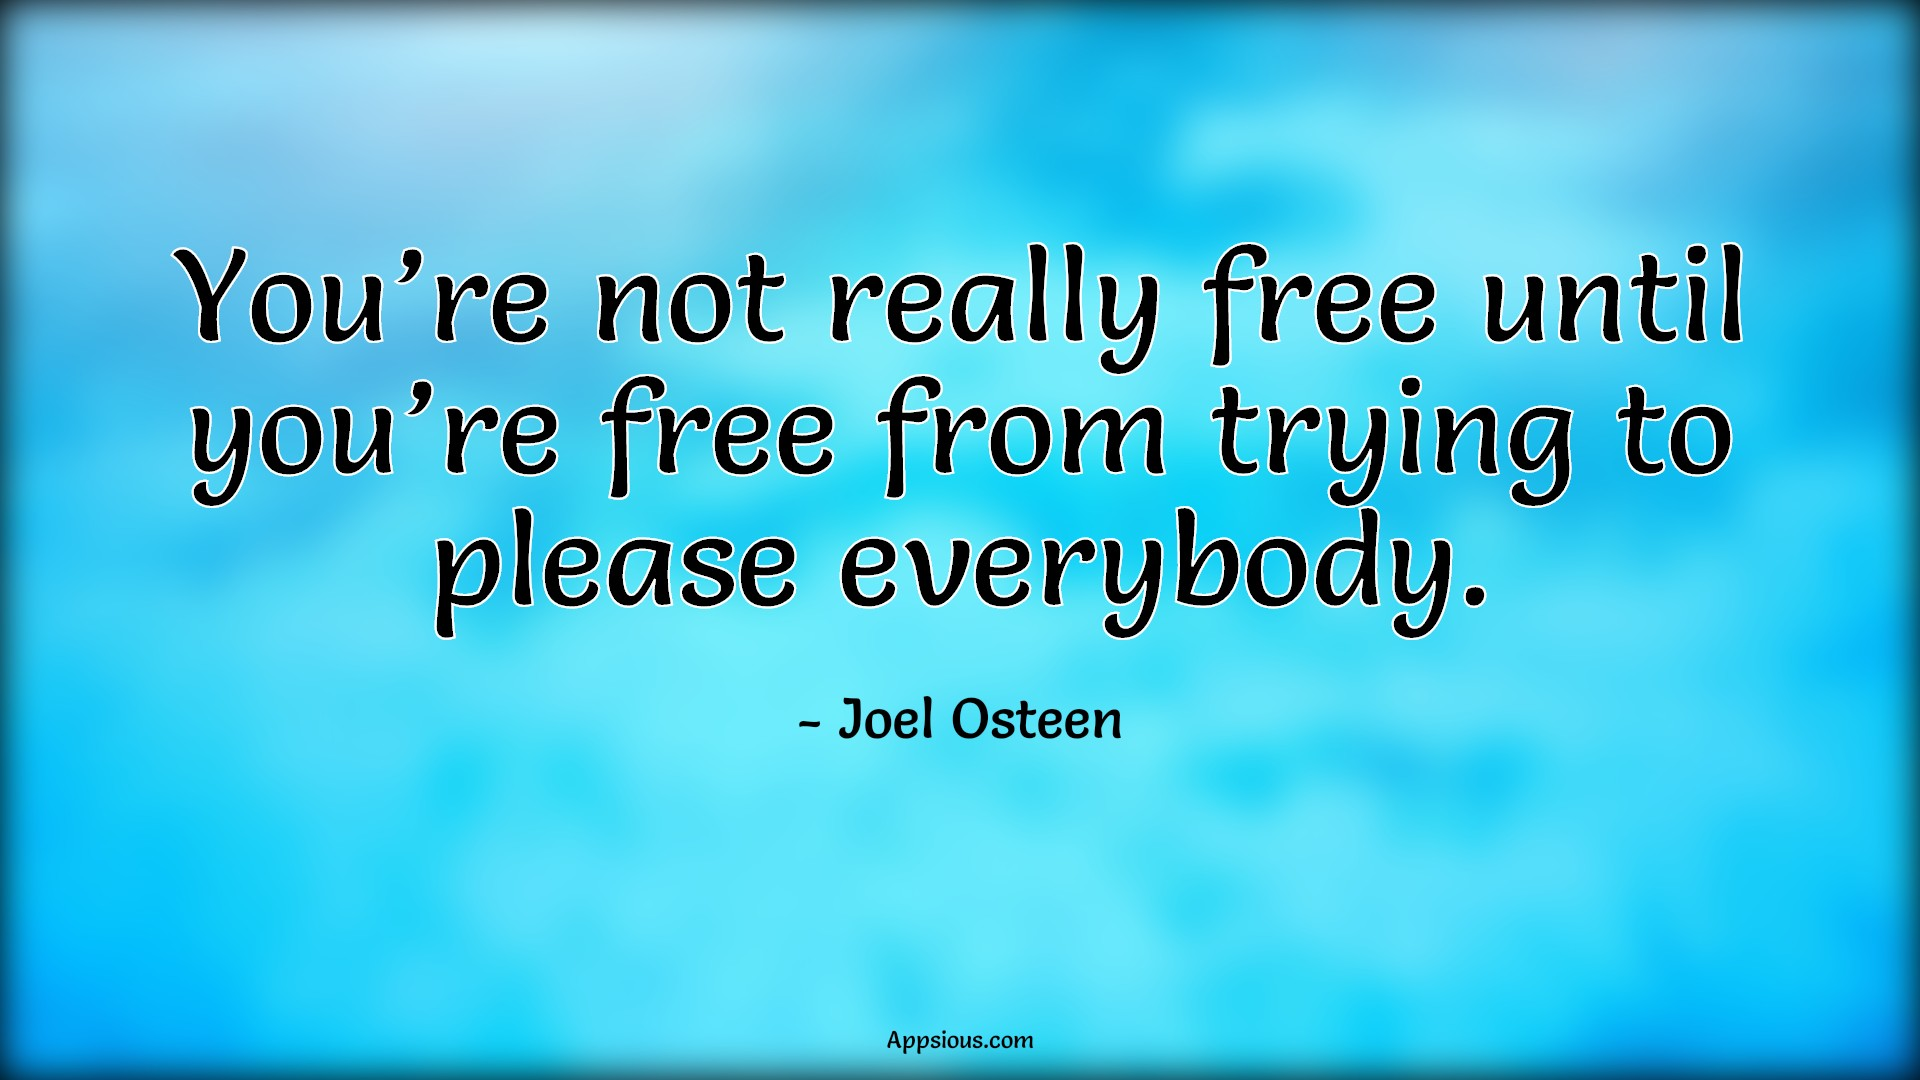 You're not really free until you're free from trying to please everybody.